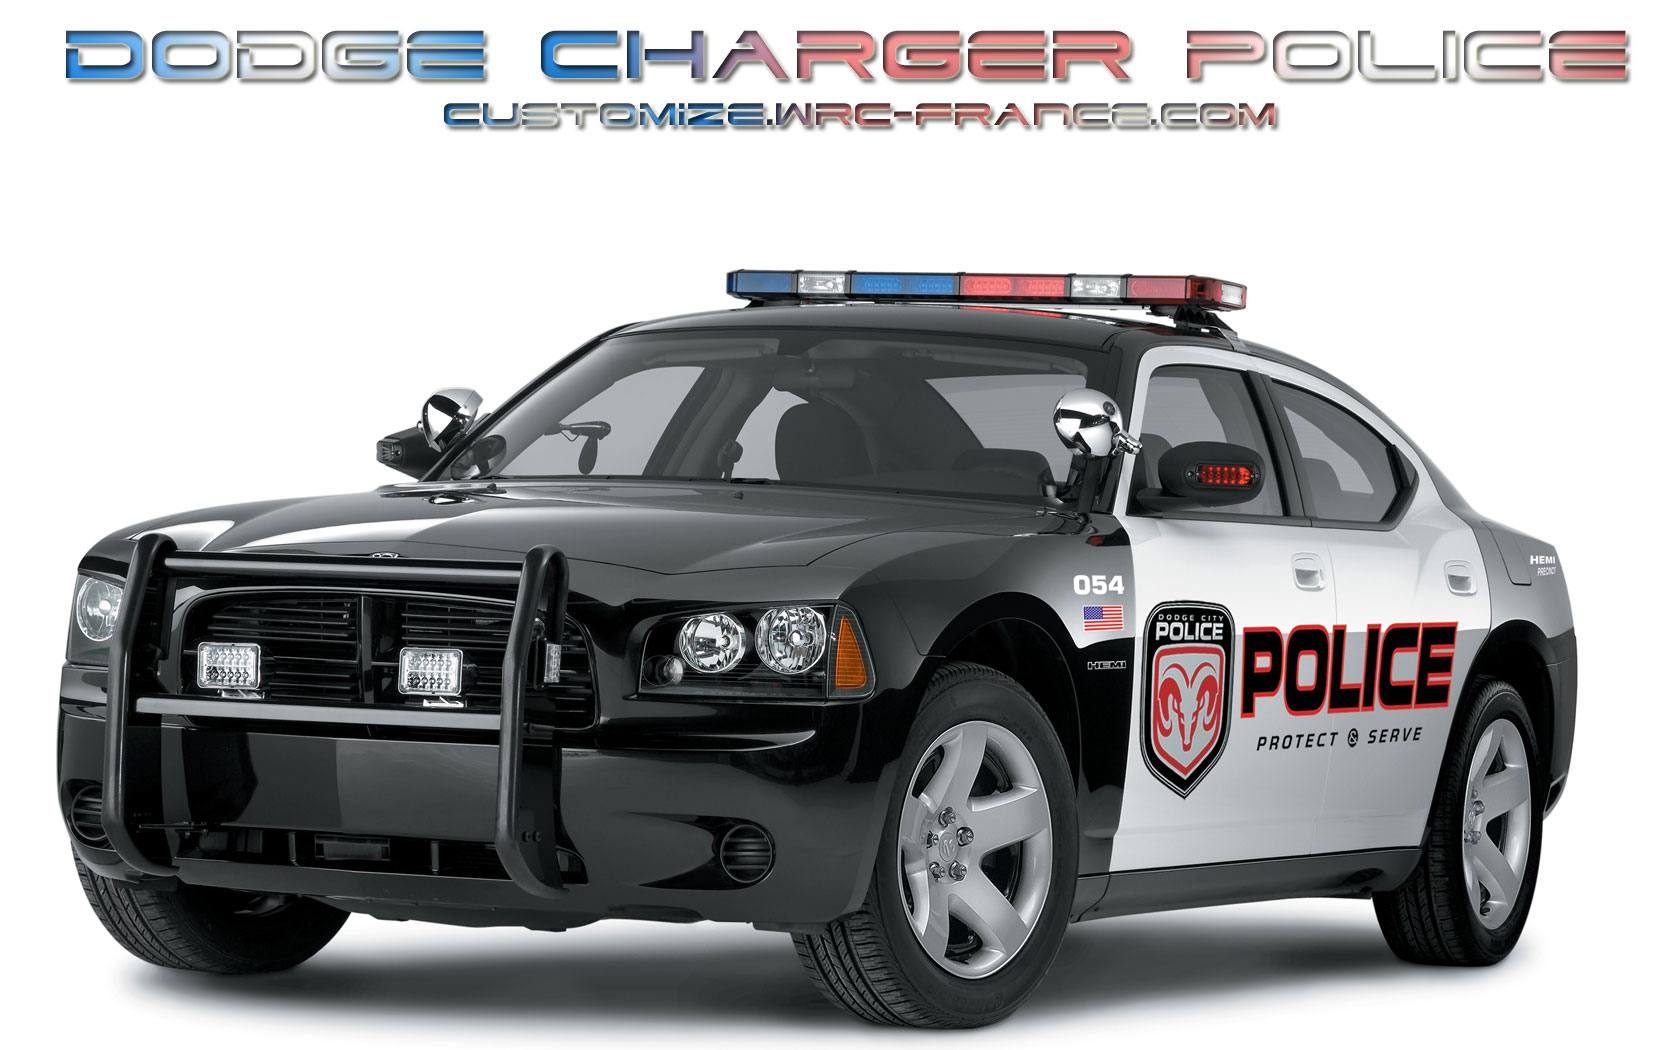 Dodge Charger Srt8 Wallpaper 6687 Hd Wallpapers in Cars   Imagescicom 1680x1050